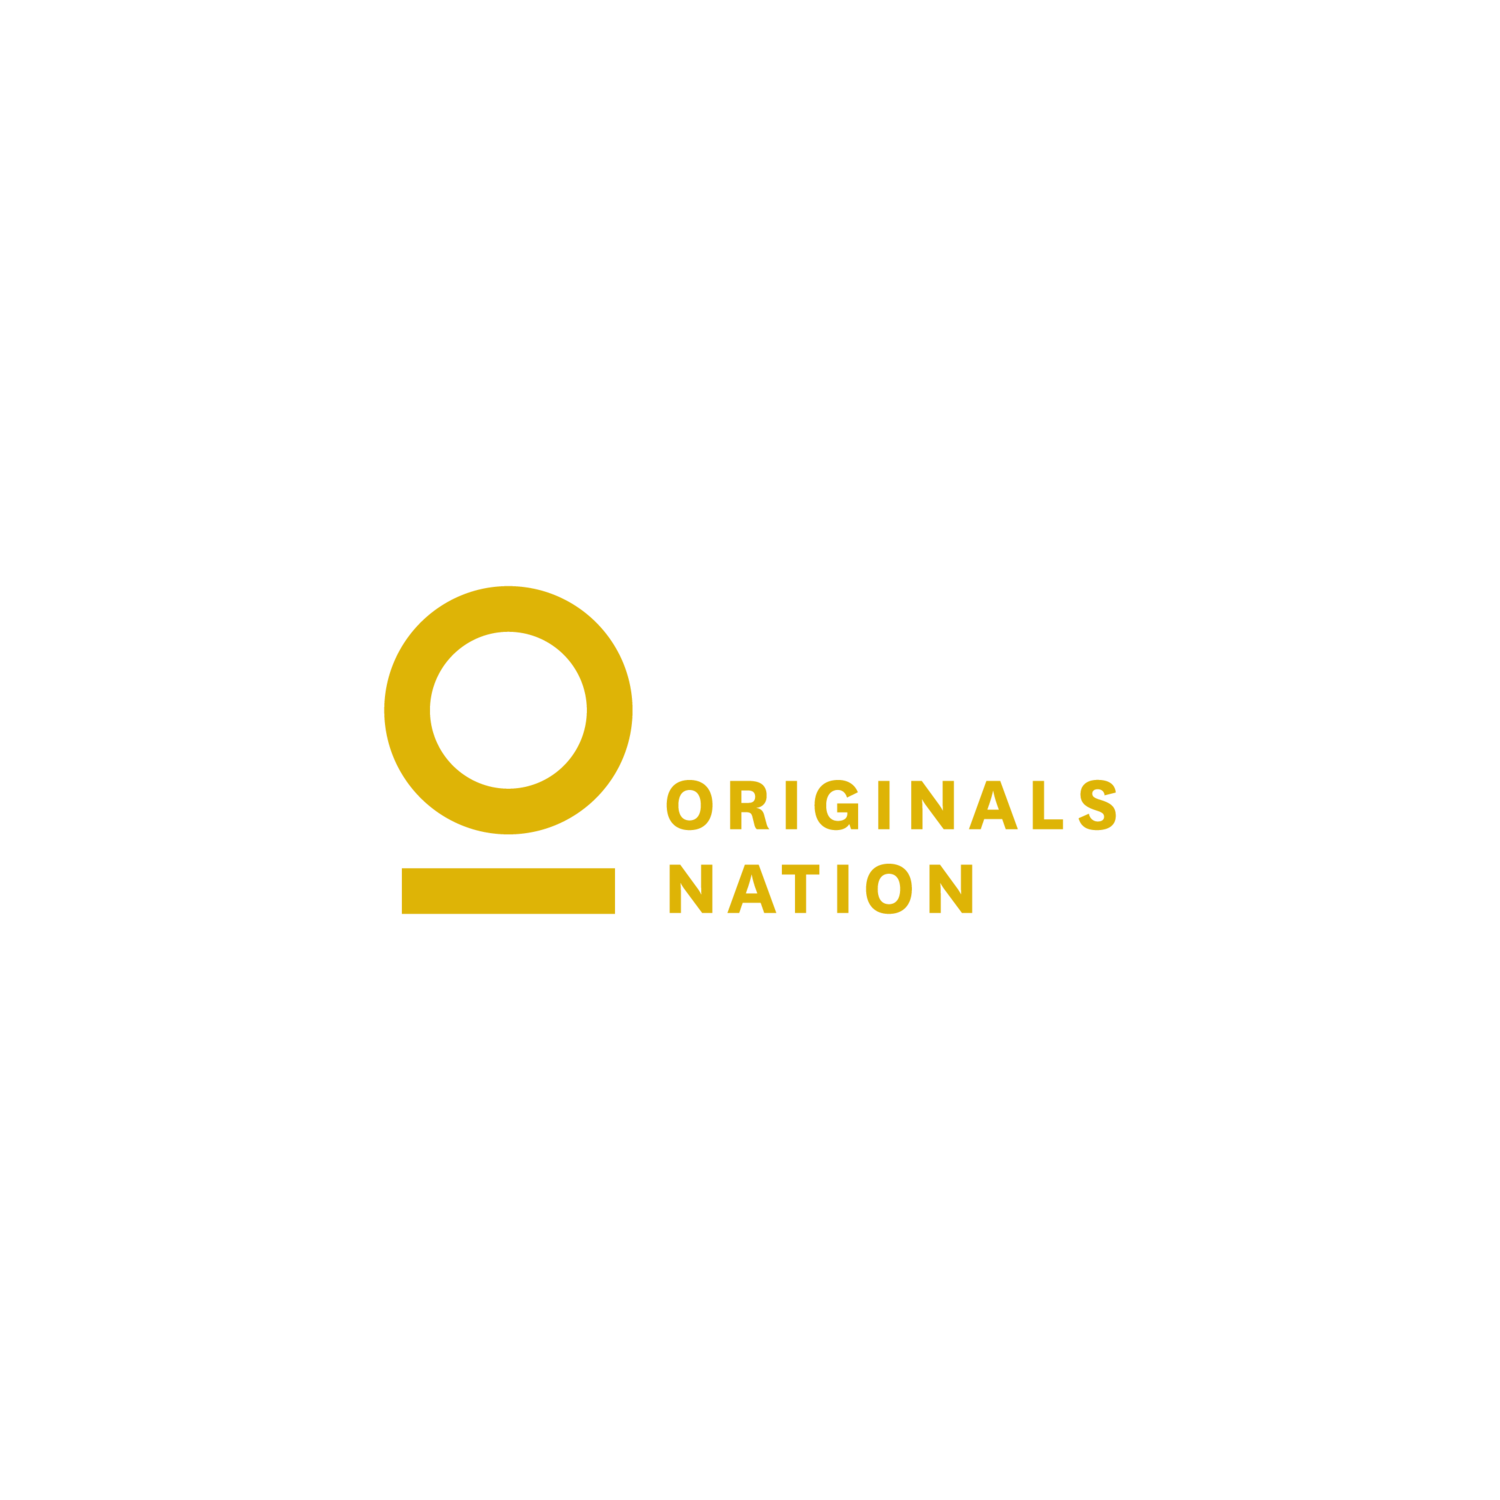 ORIGINALS NATION